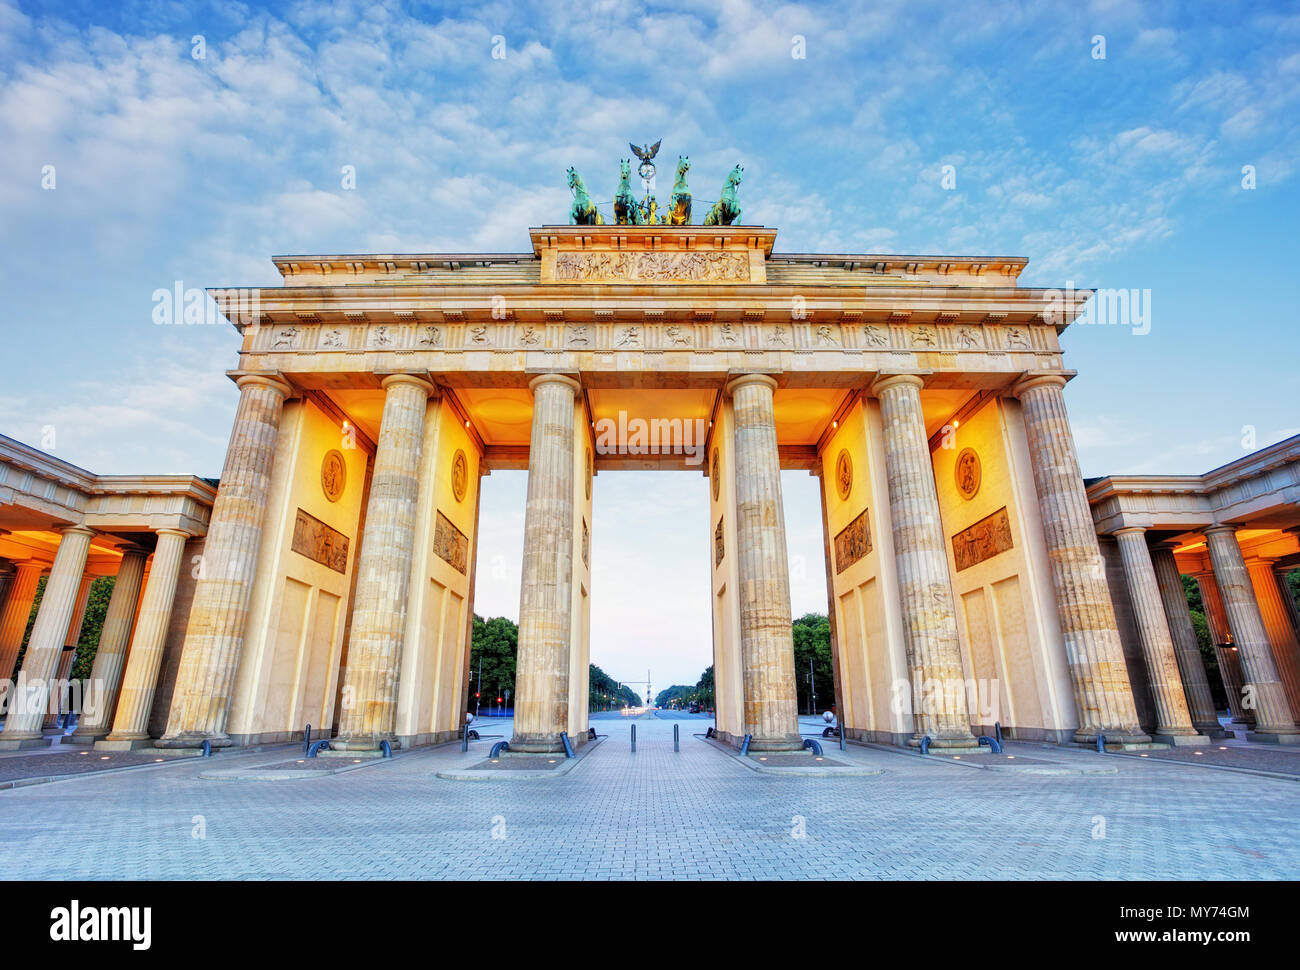 Le Brandebourg à Berlin, capitale de l'Allemagne Photo Stock